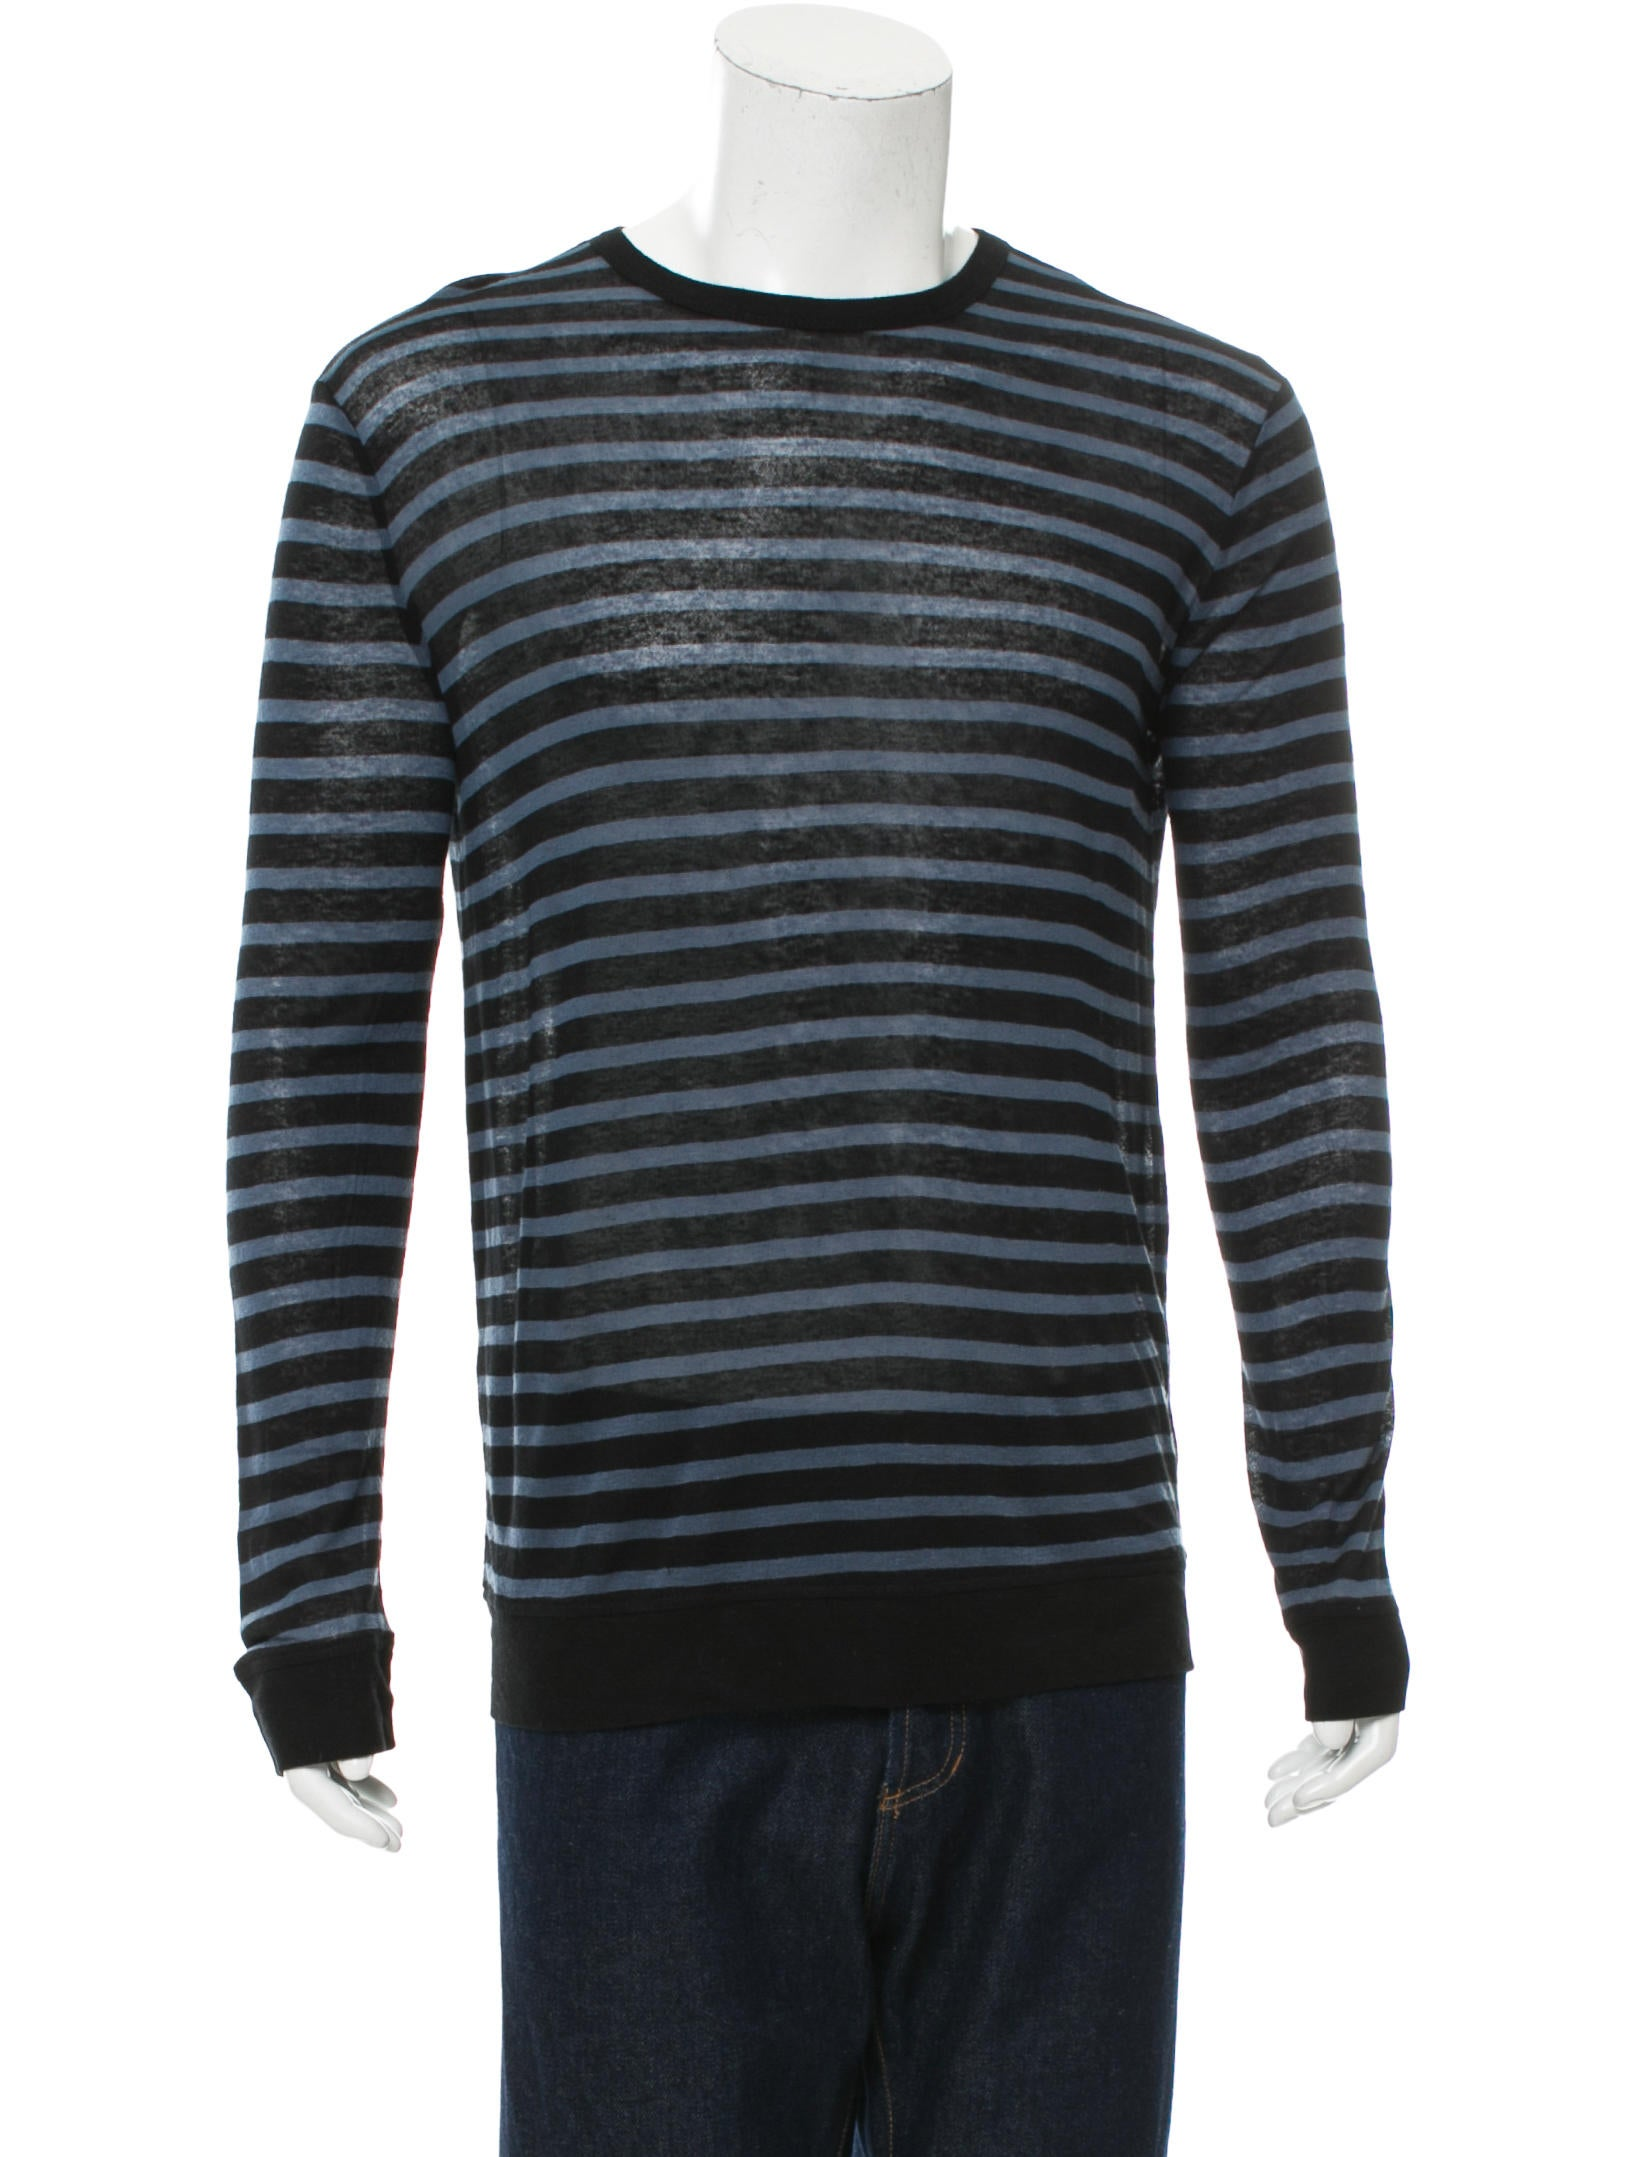 T by alexander wang striped long sleeve t shirt w tags Striped long sleeve t shirt